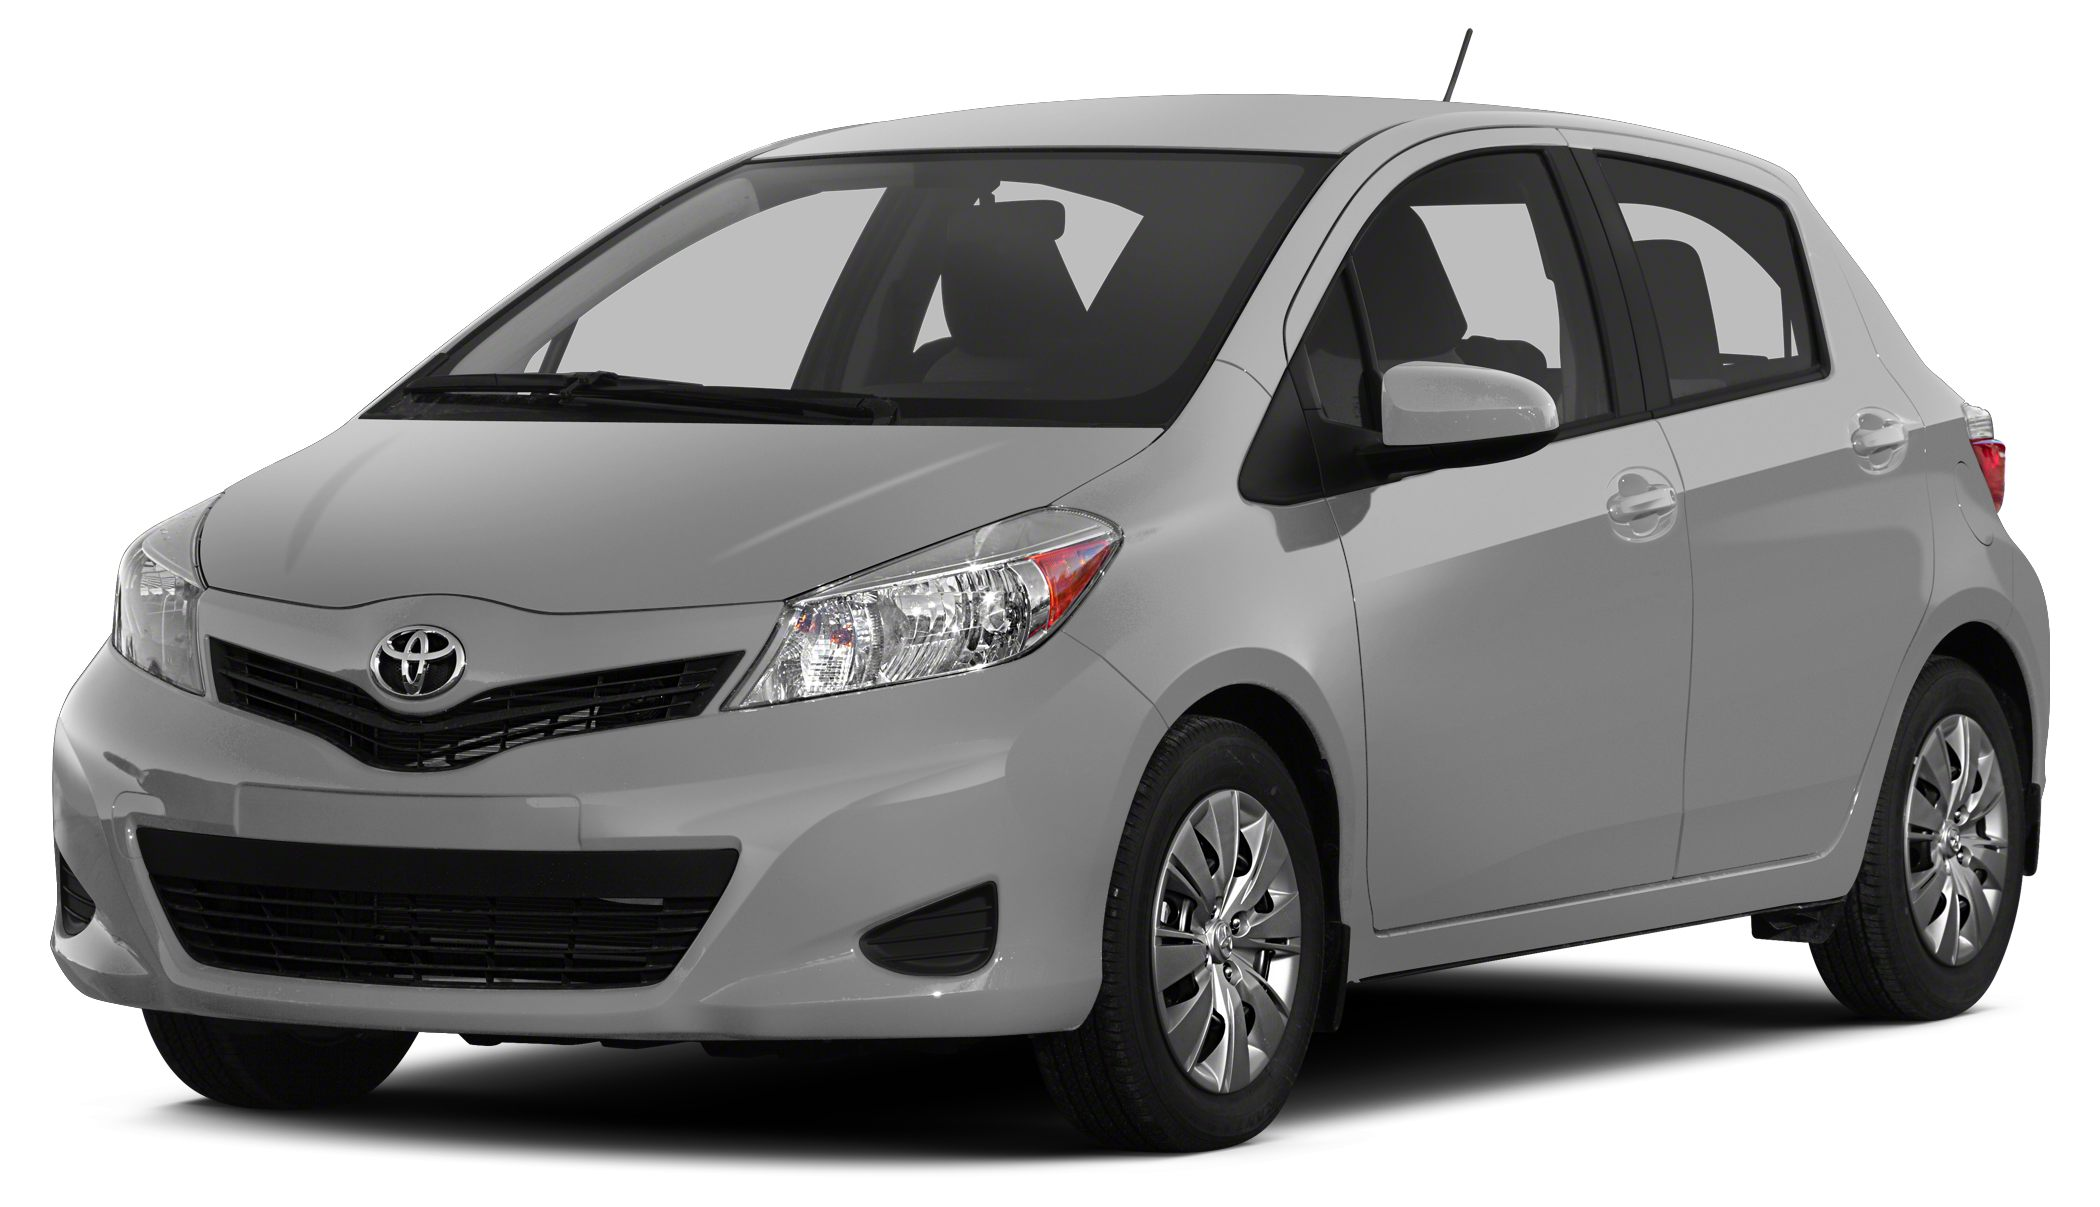 2014 Toyota Yaris LE FUEL EFFICIENT 36 MPG Hwy30 MPG City LE trim CARFAX 1-Owner Bluetooth CD